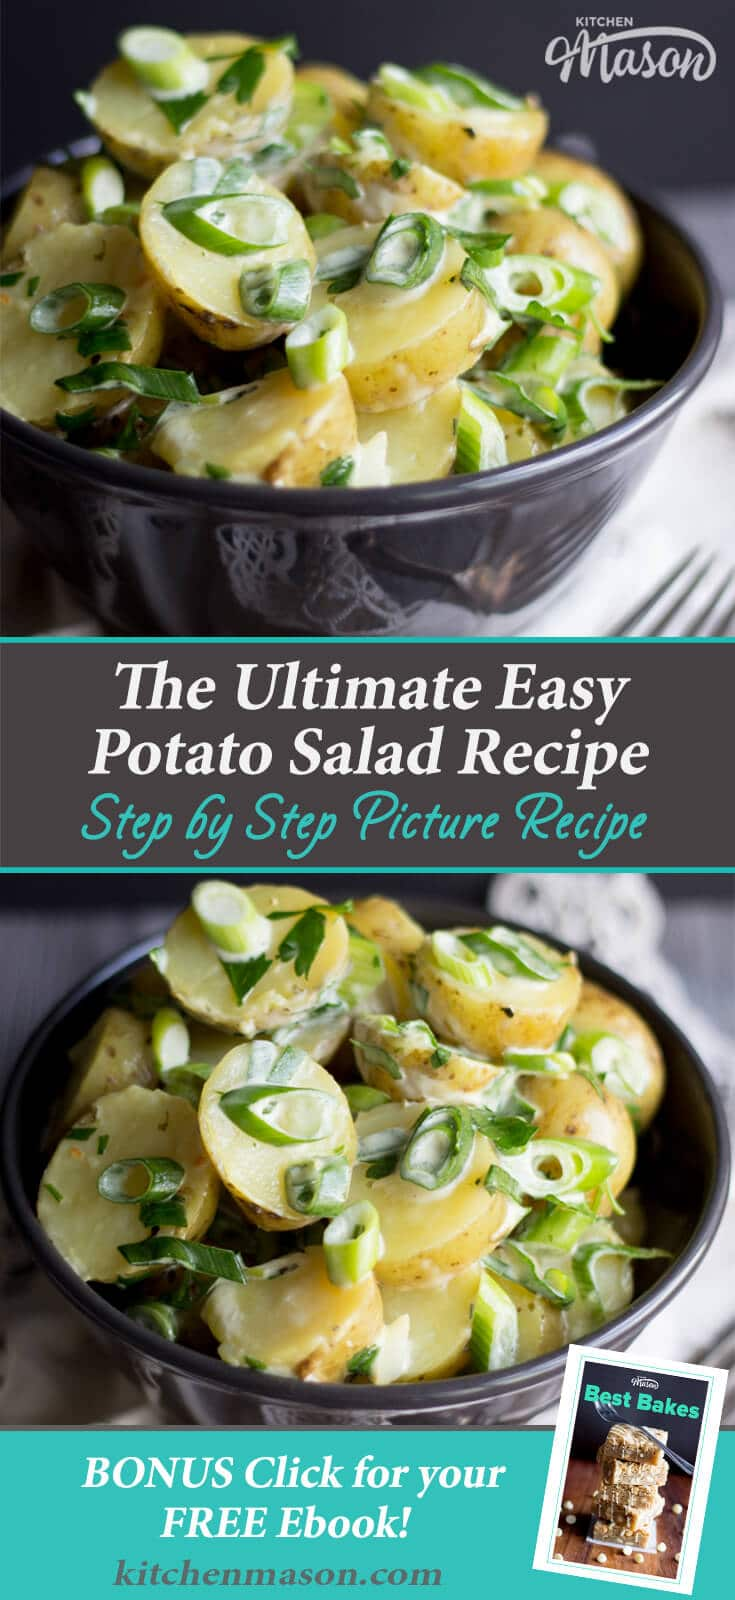 The Ultimate Easy Potato Salad Recipe